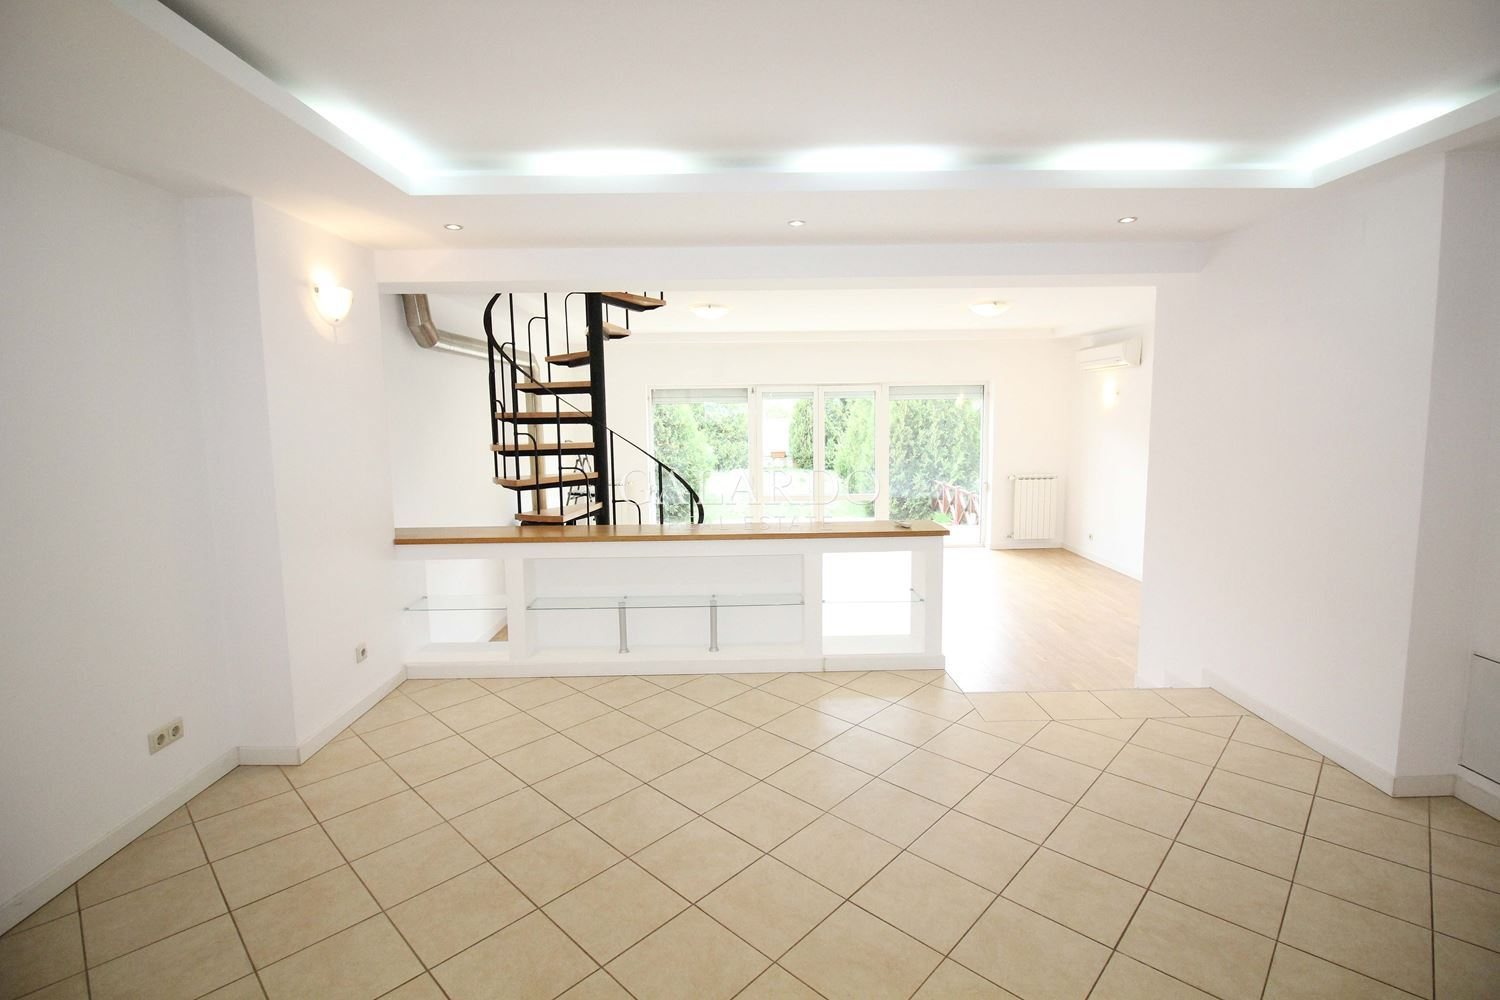 House for rent in a gated complex in Vitosha